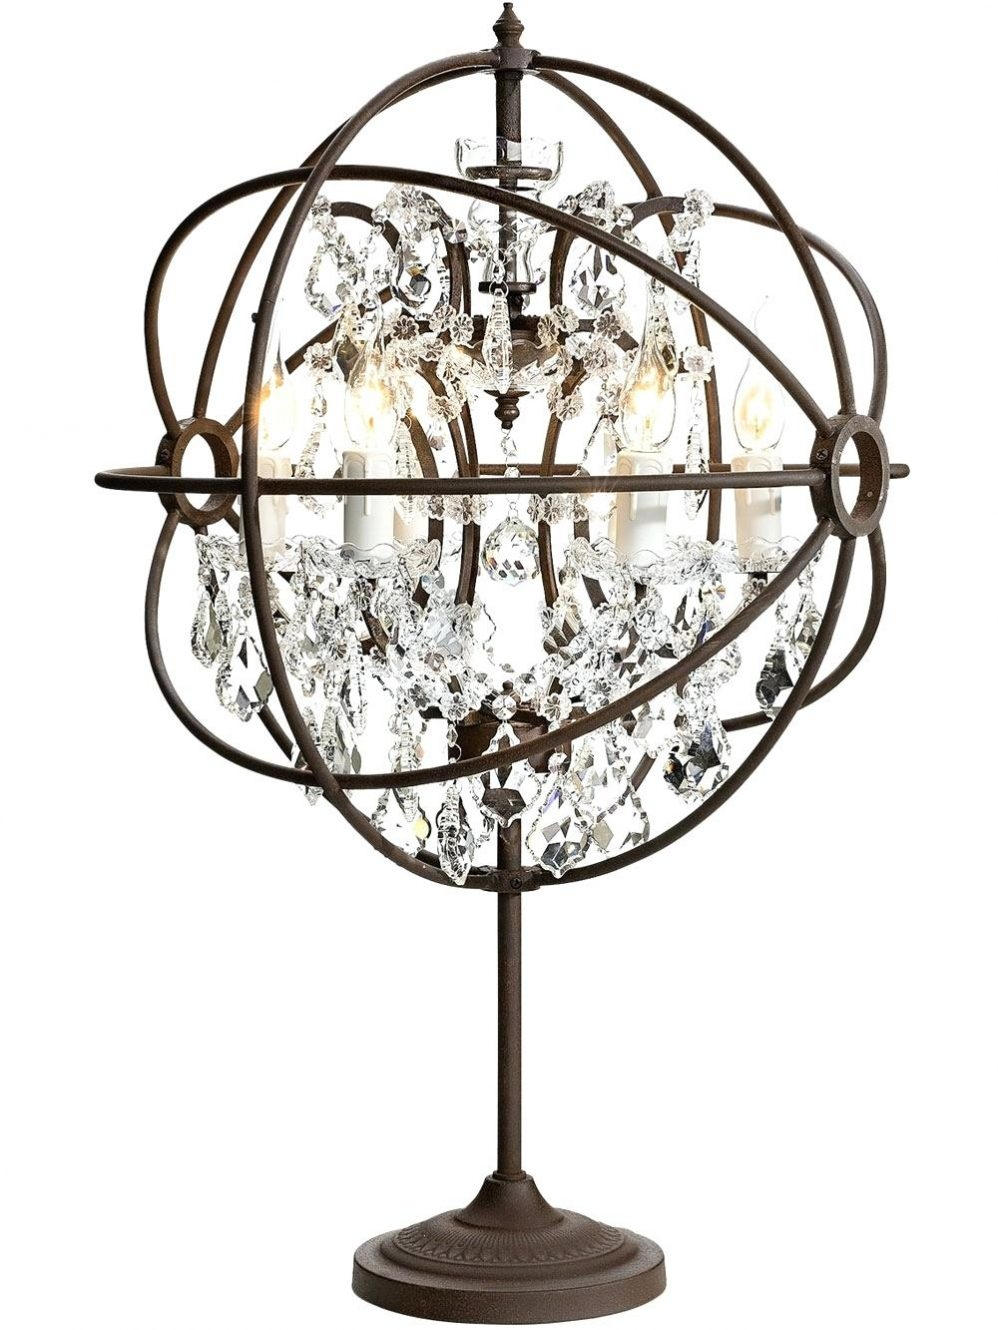 Wooden Chandelier Lighting Mini Chandelier Table Lamp Edison Inside Small Crystal Chandelier Table Lamps (Image 25 of 25)